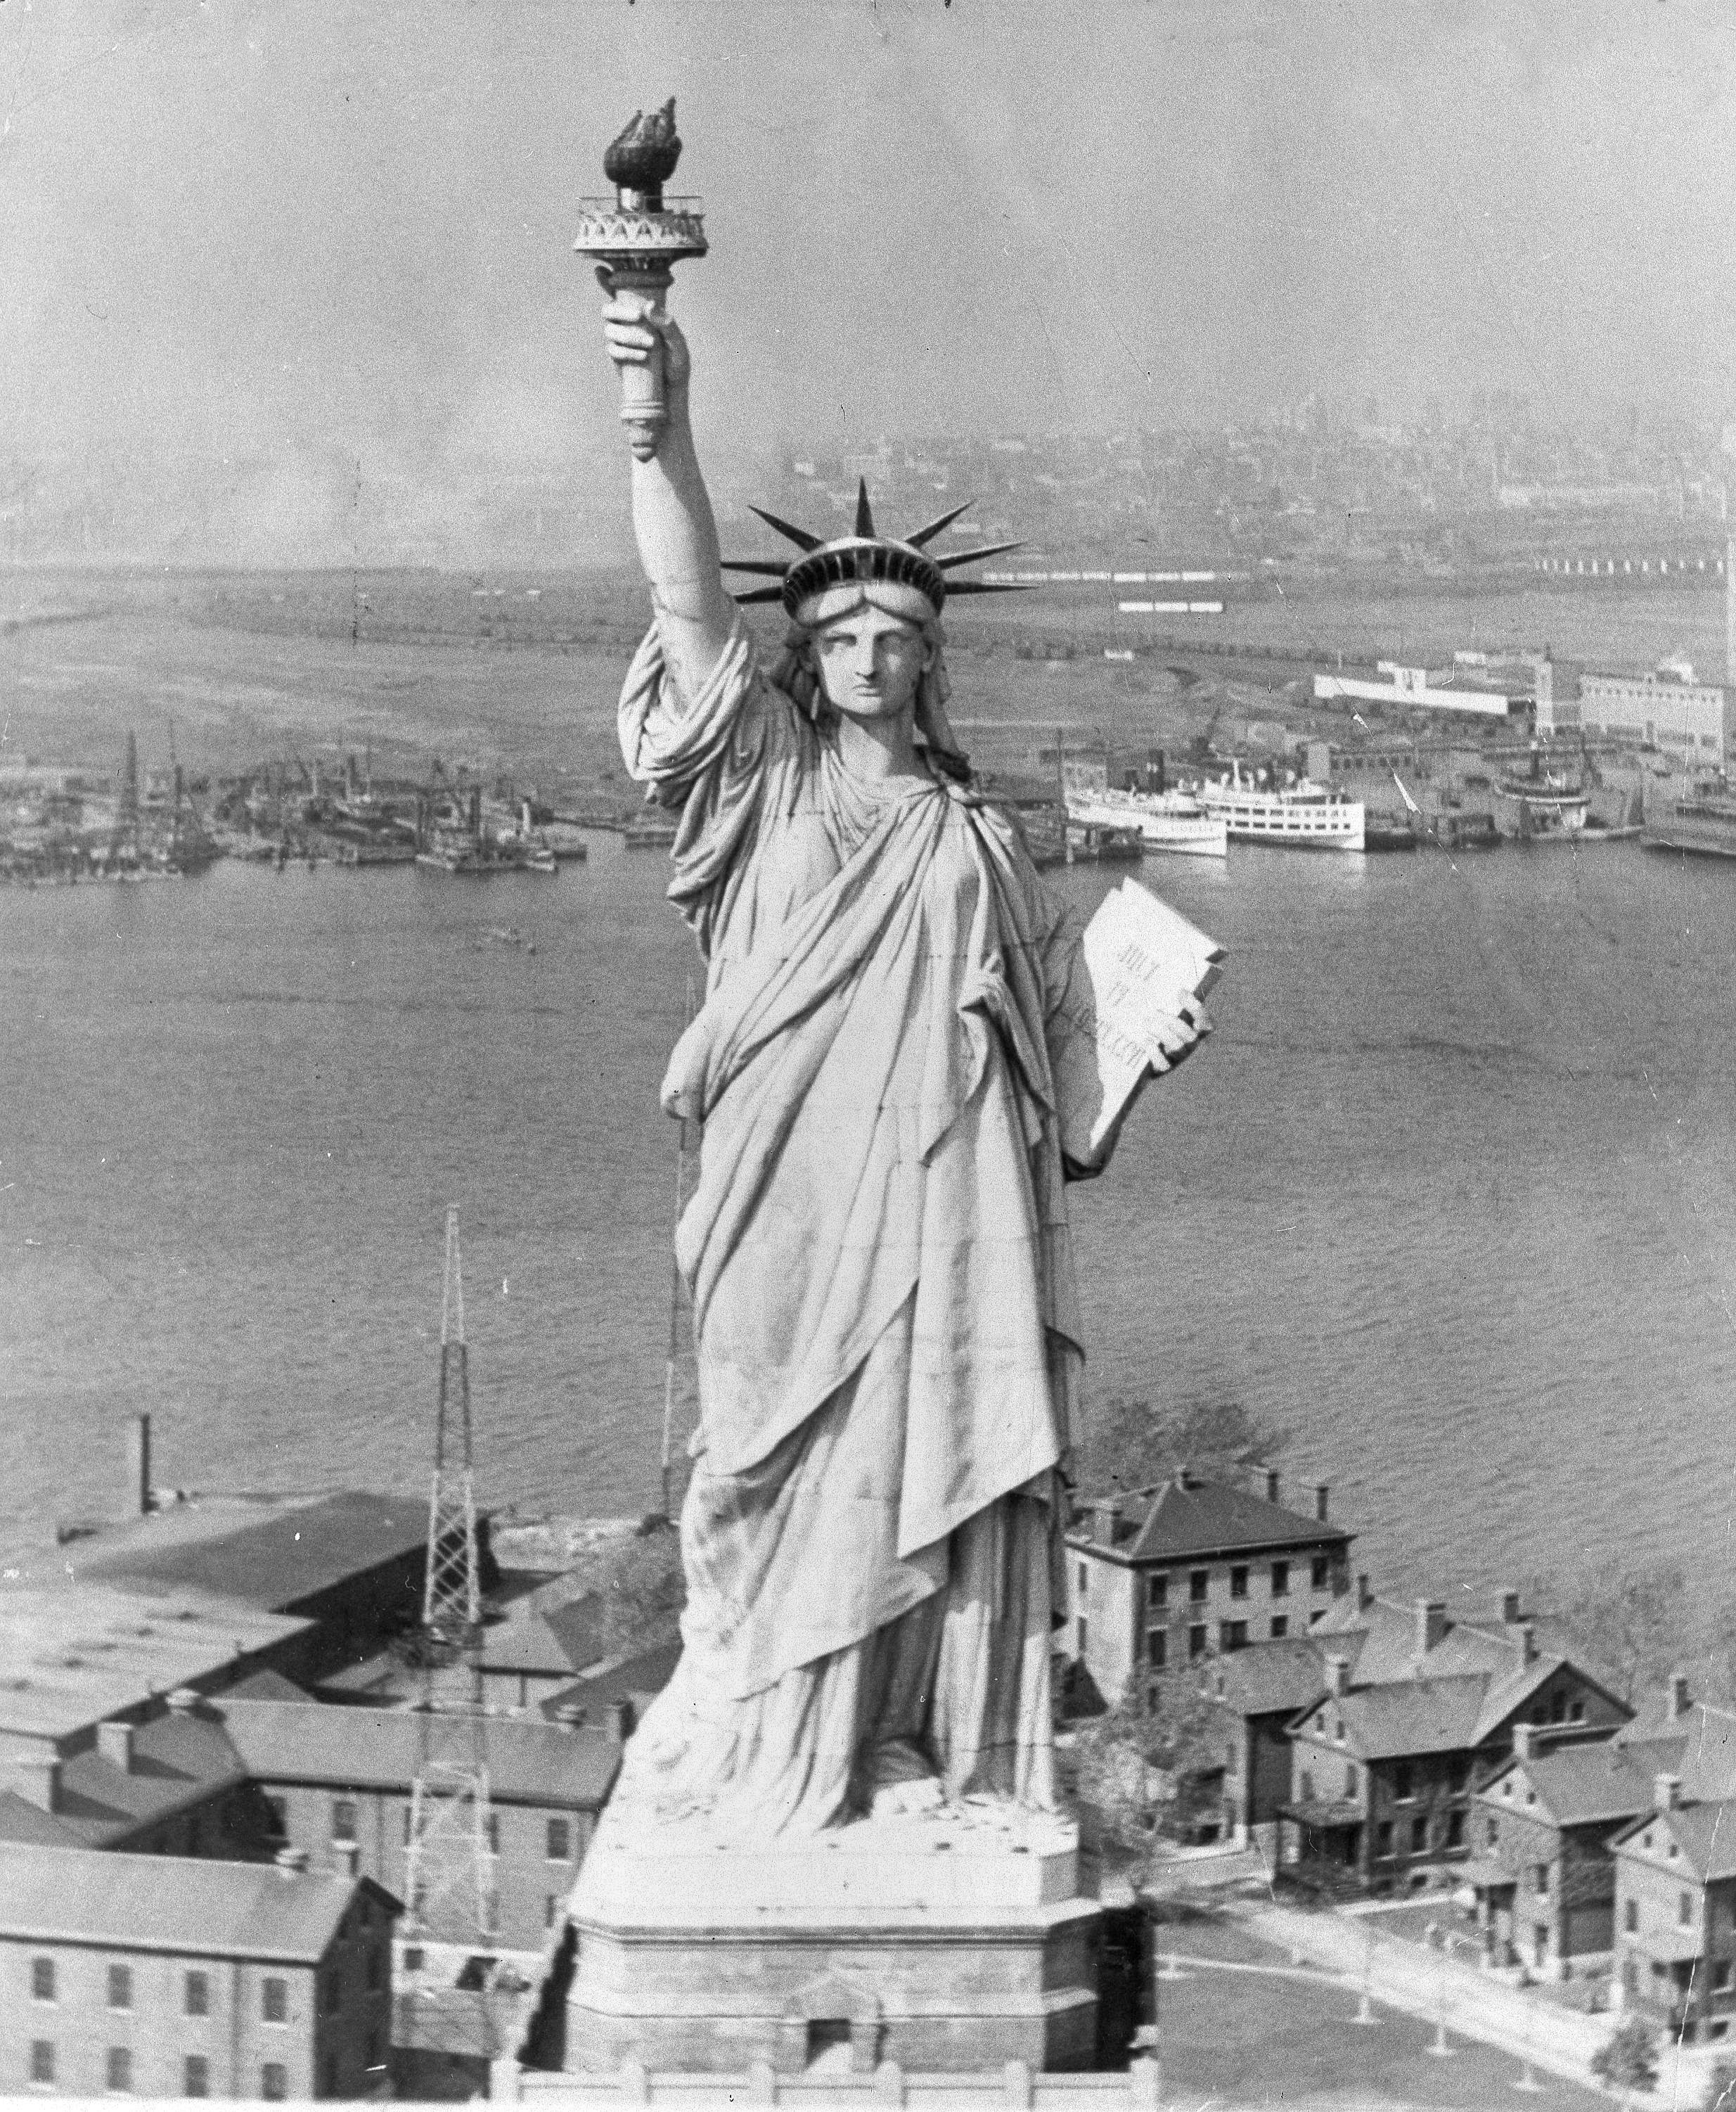 The Statue of Liberty in New York Harbor with New Jersey in the background, Oct. 12, 1933.